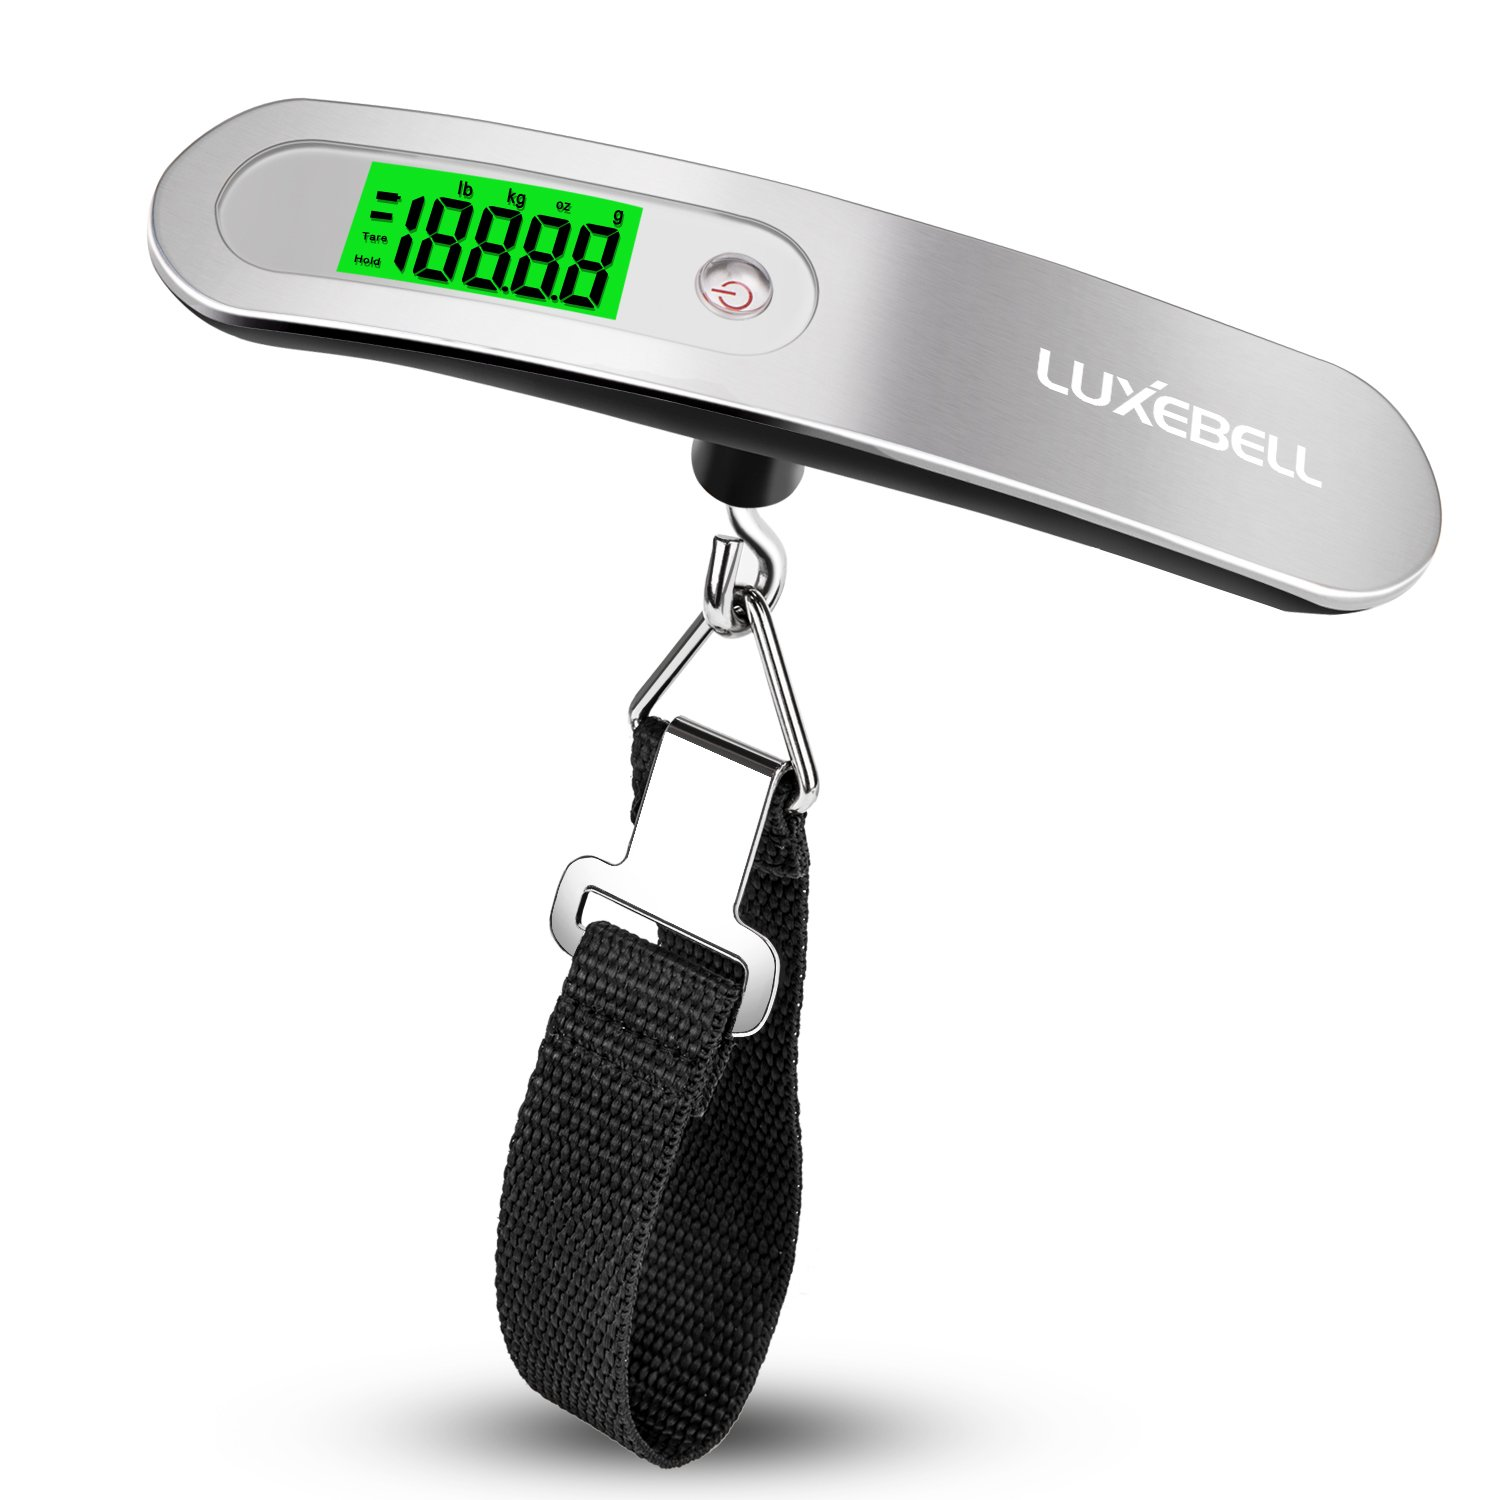 Luxebell 110lbs Digital Luggage Scale - Gift for Traveler LS0007